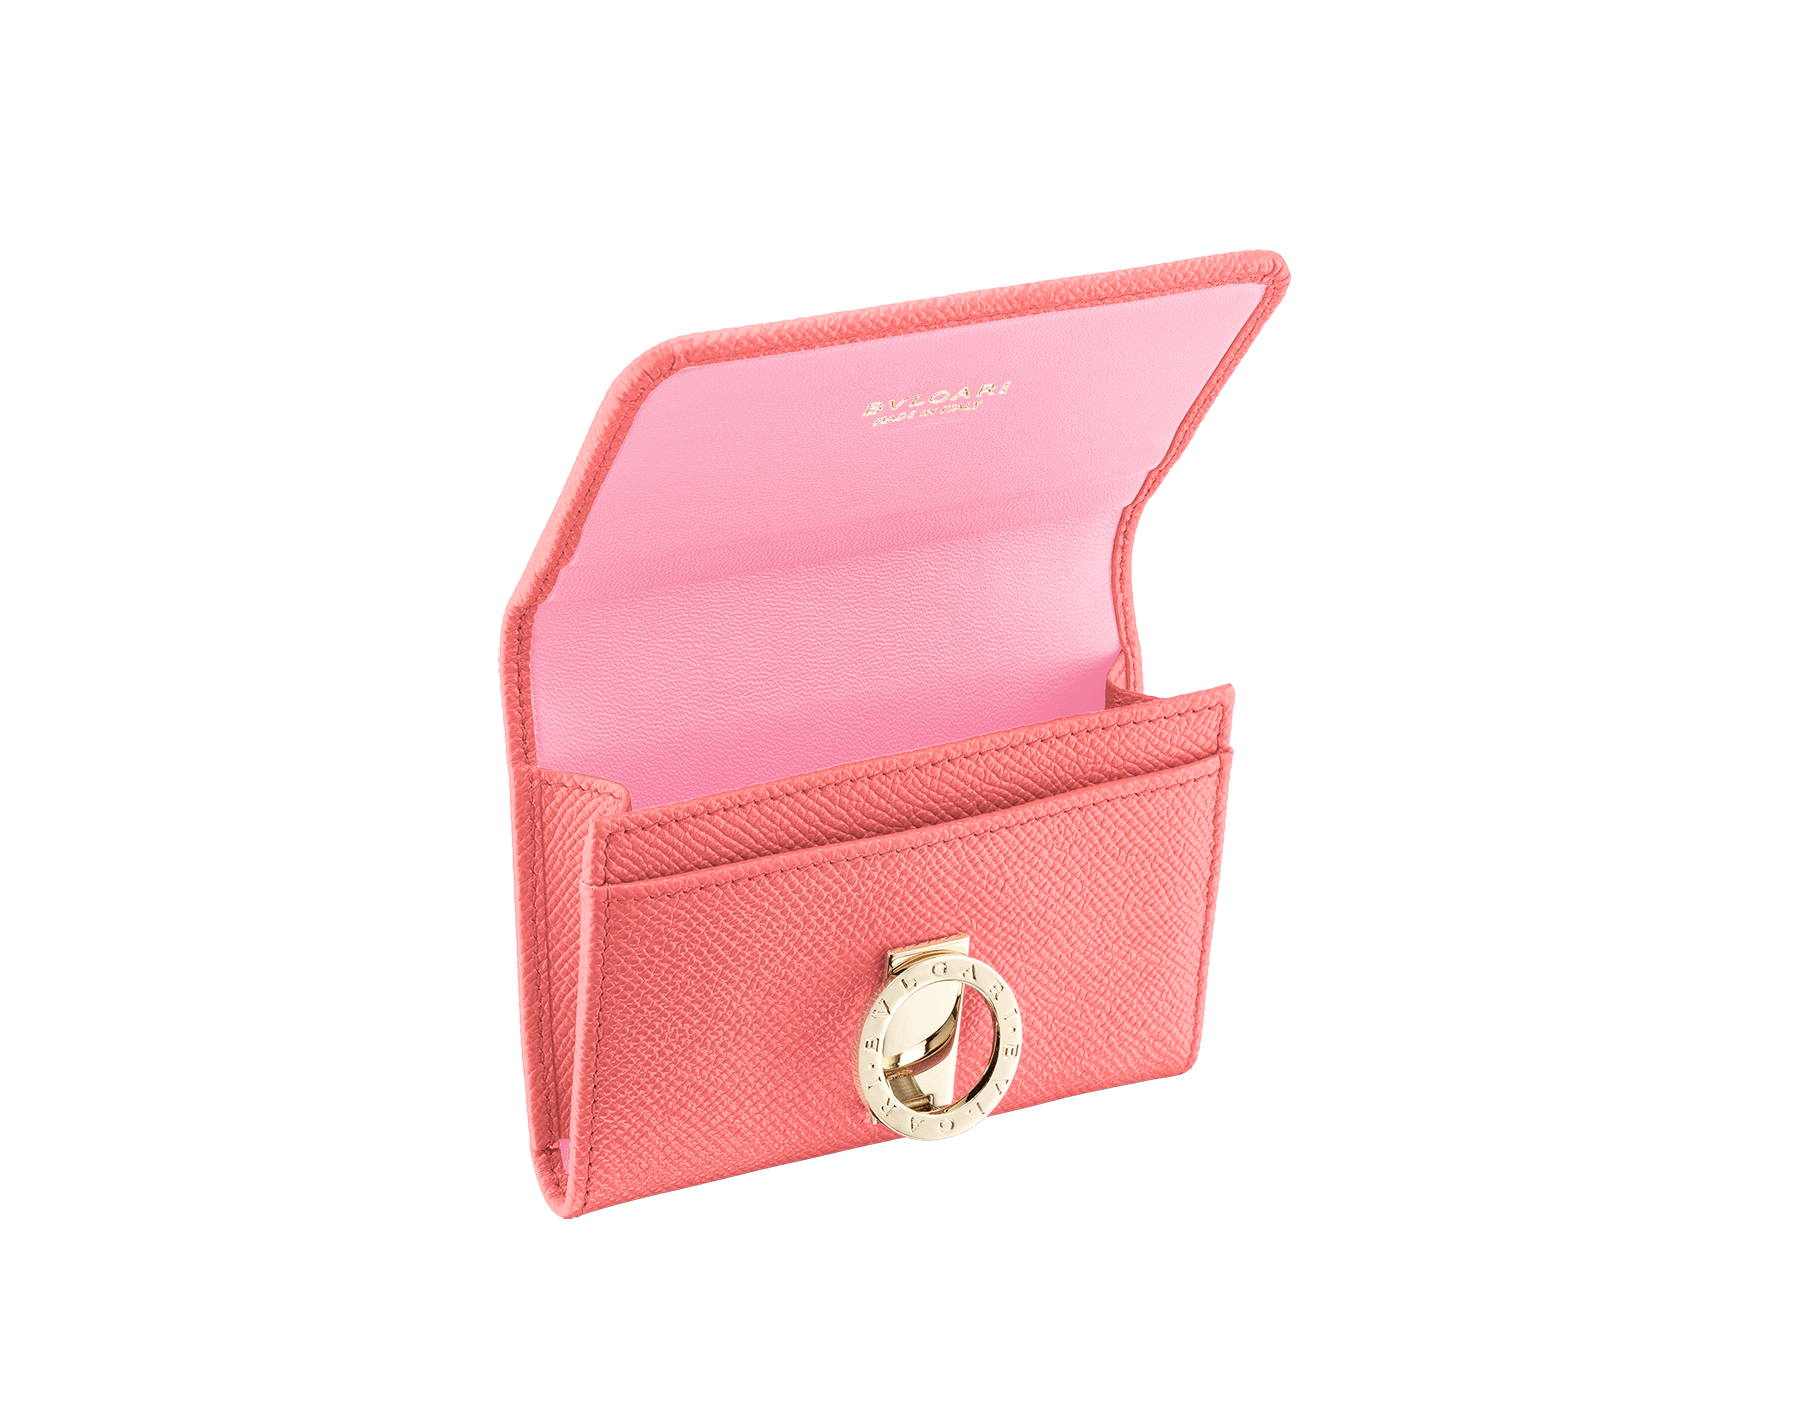 BVLGARI BVLGARI business card holder in silky coral bright grain calf leather and flamingo quartz nappa leather. Iconic logo clip closure in light gold plated brass. 289040 image 2